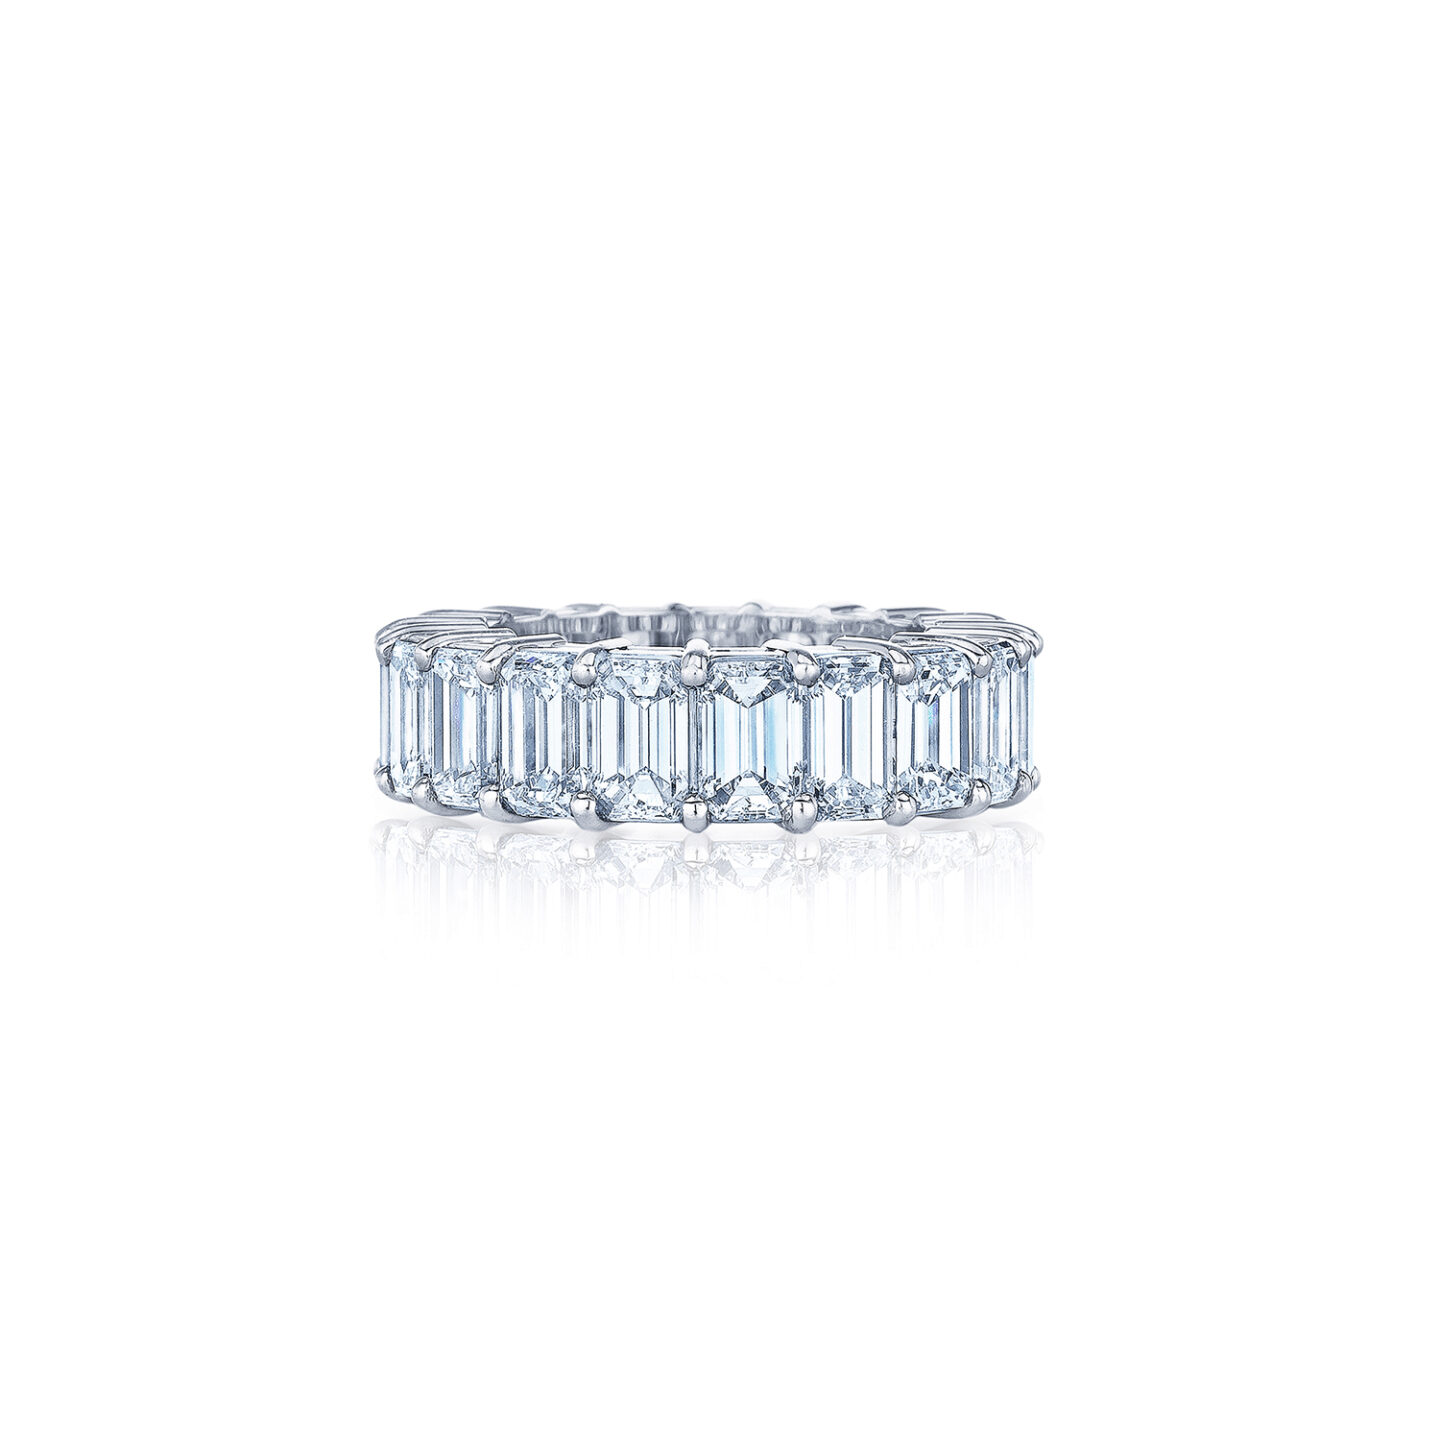 This is a photo of Emerald Cut Diamond Shared Prong Eternity Band